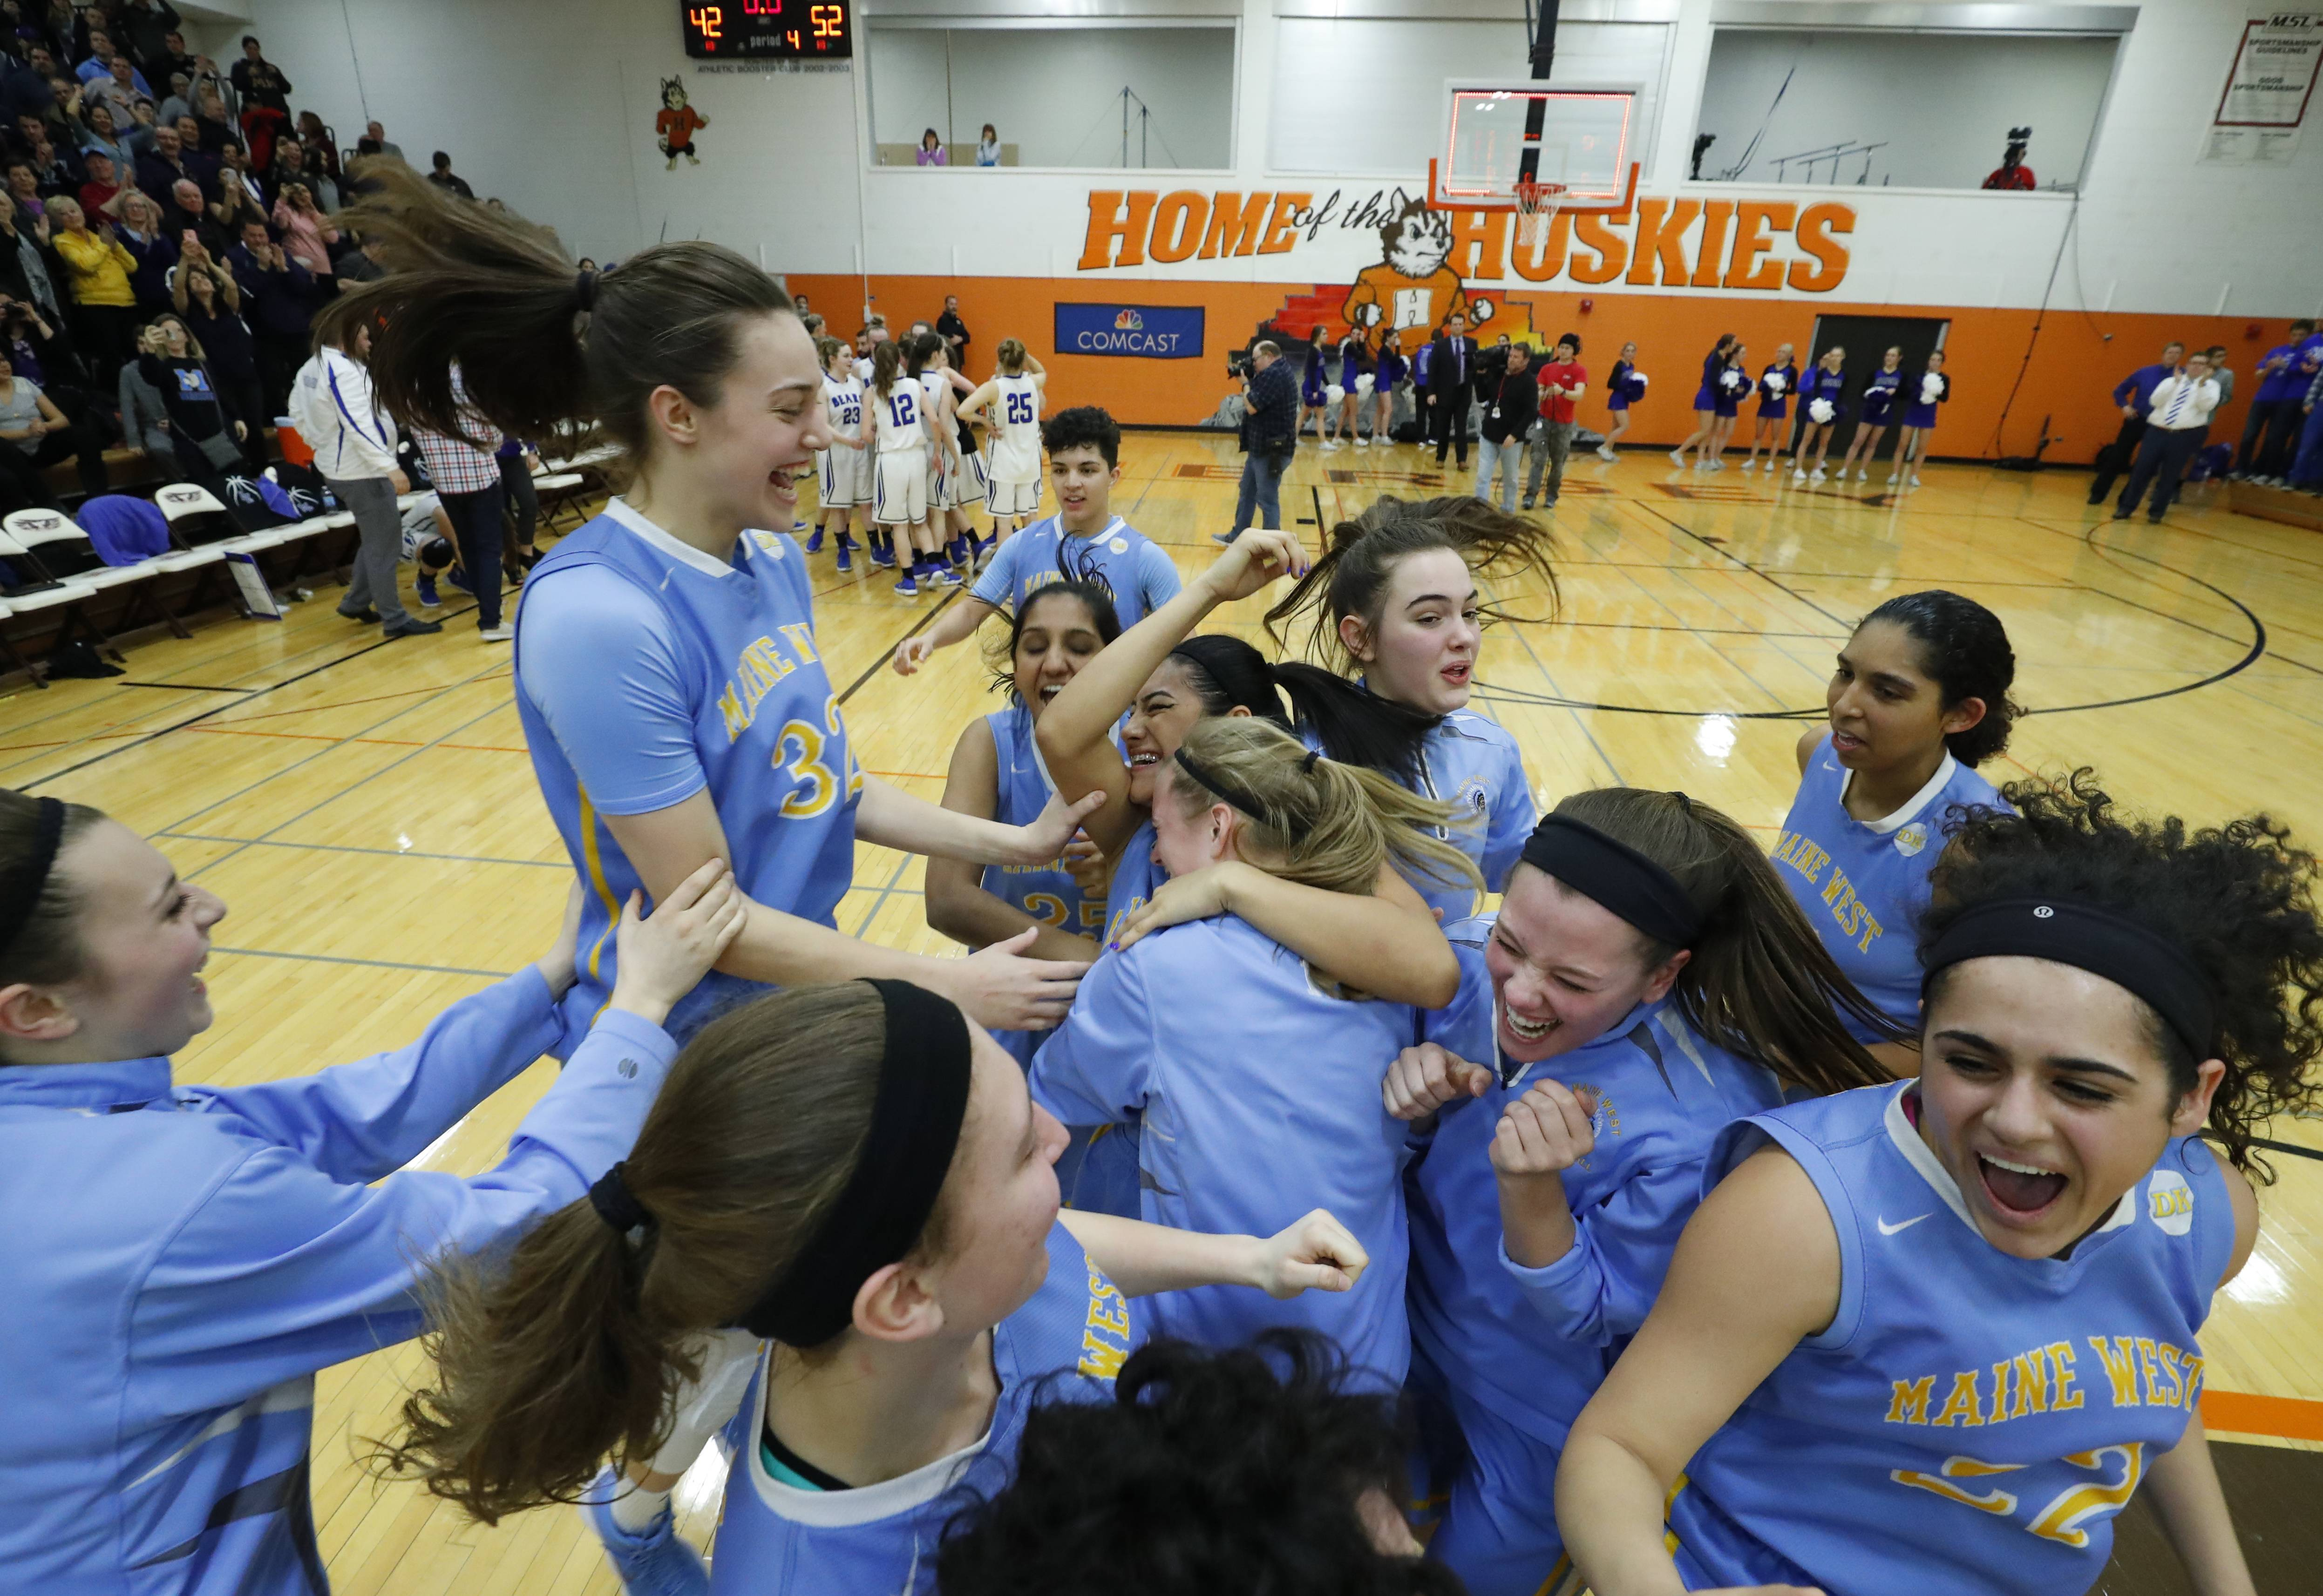 Maine West celebrates after beating Lake Zurich 52-42 in the Class 4A Hersey supersectional in Arlington Heights on Monday.